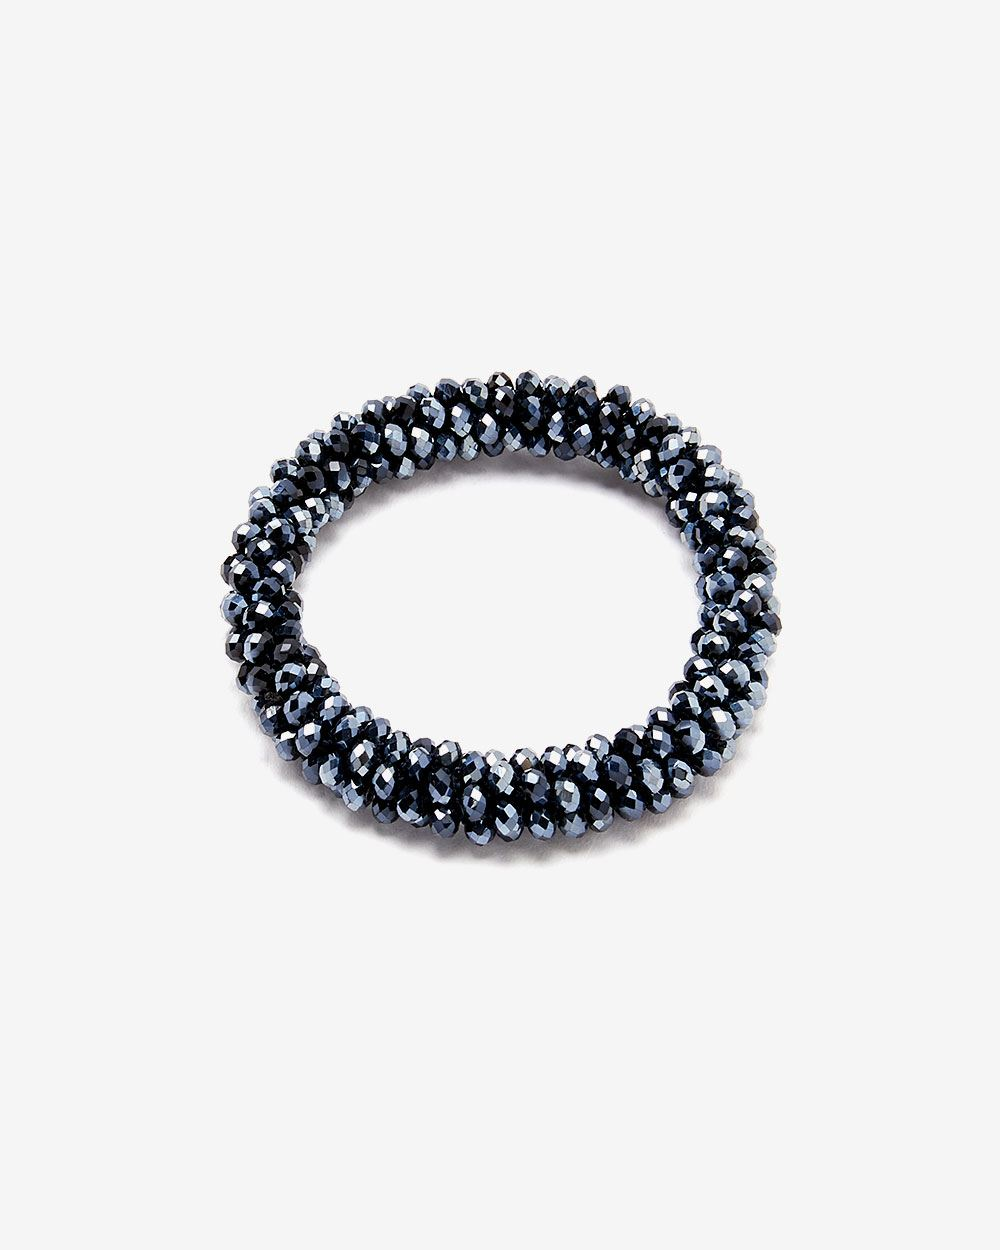 Faceted Beads Bracelet